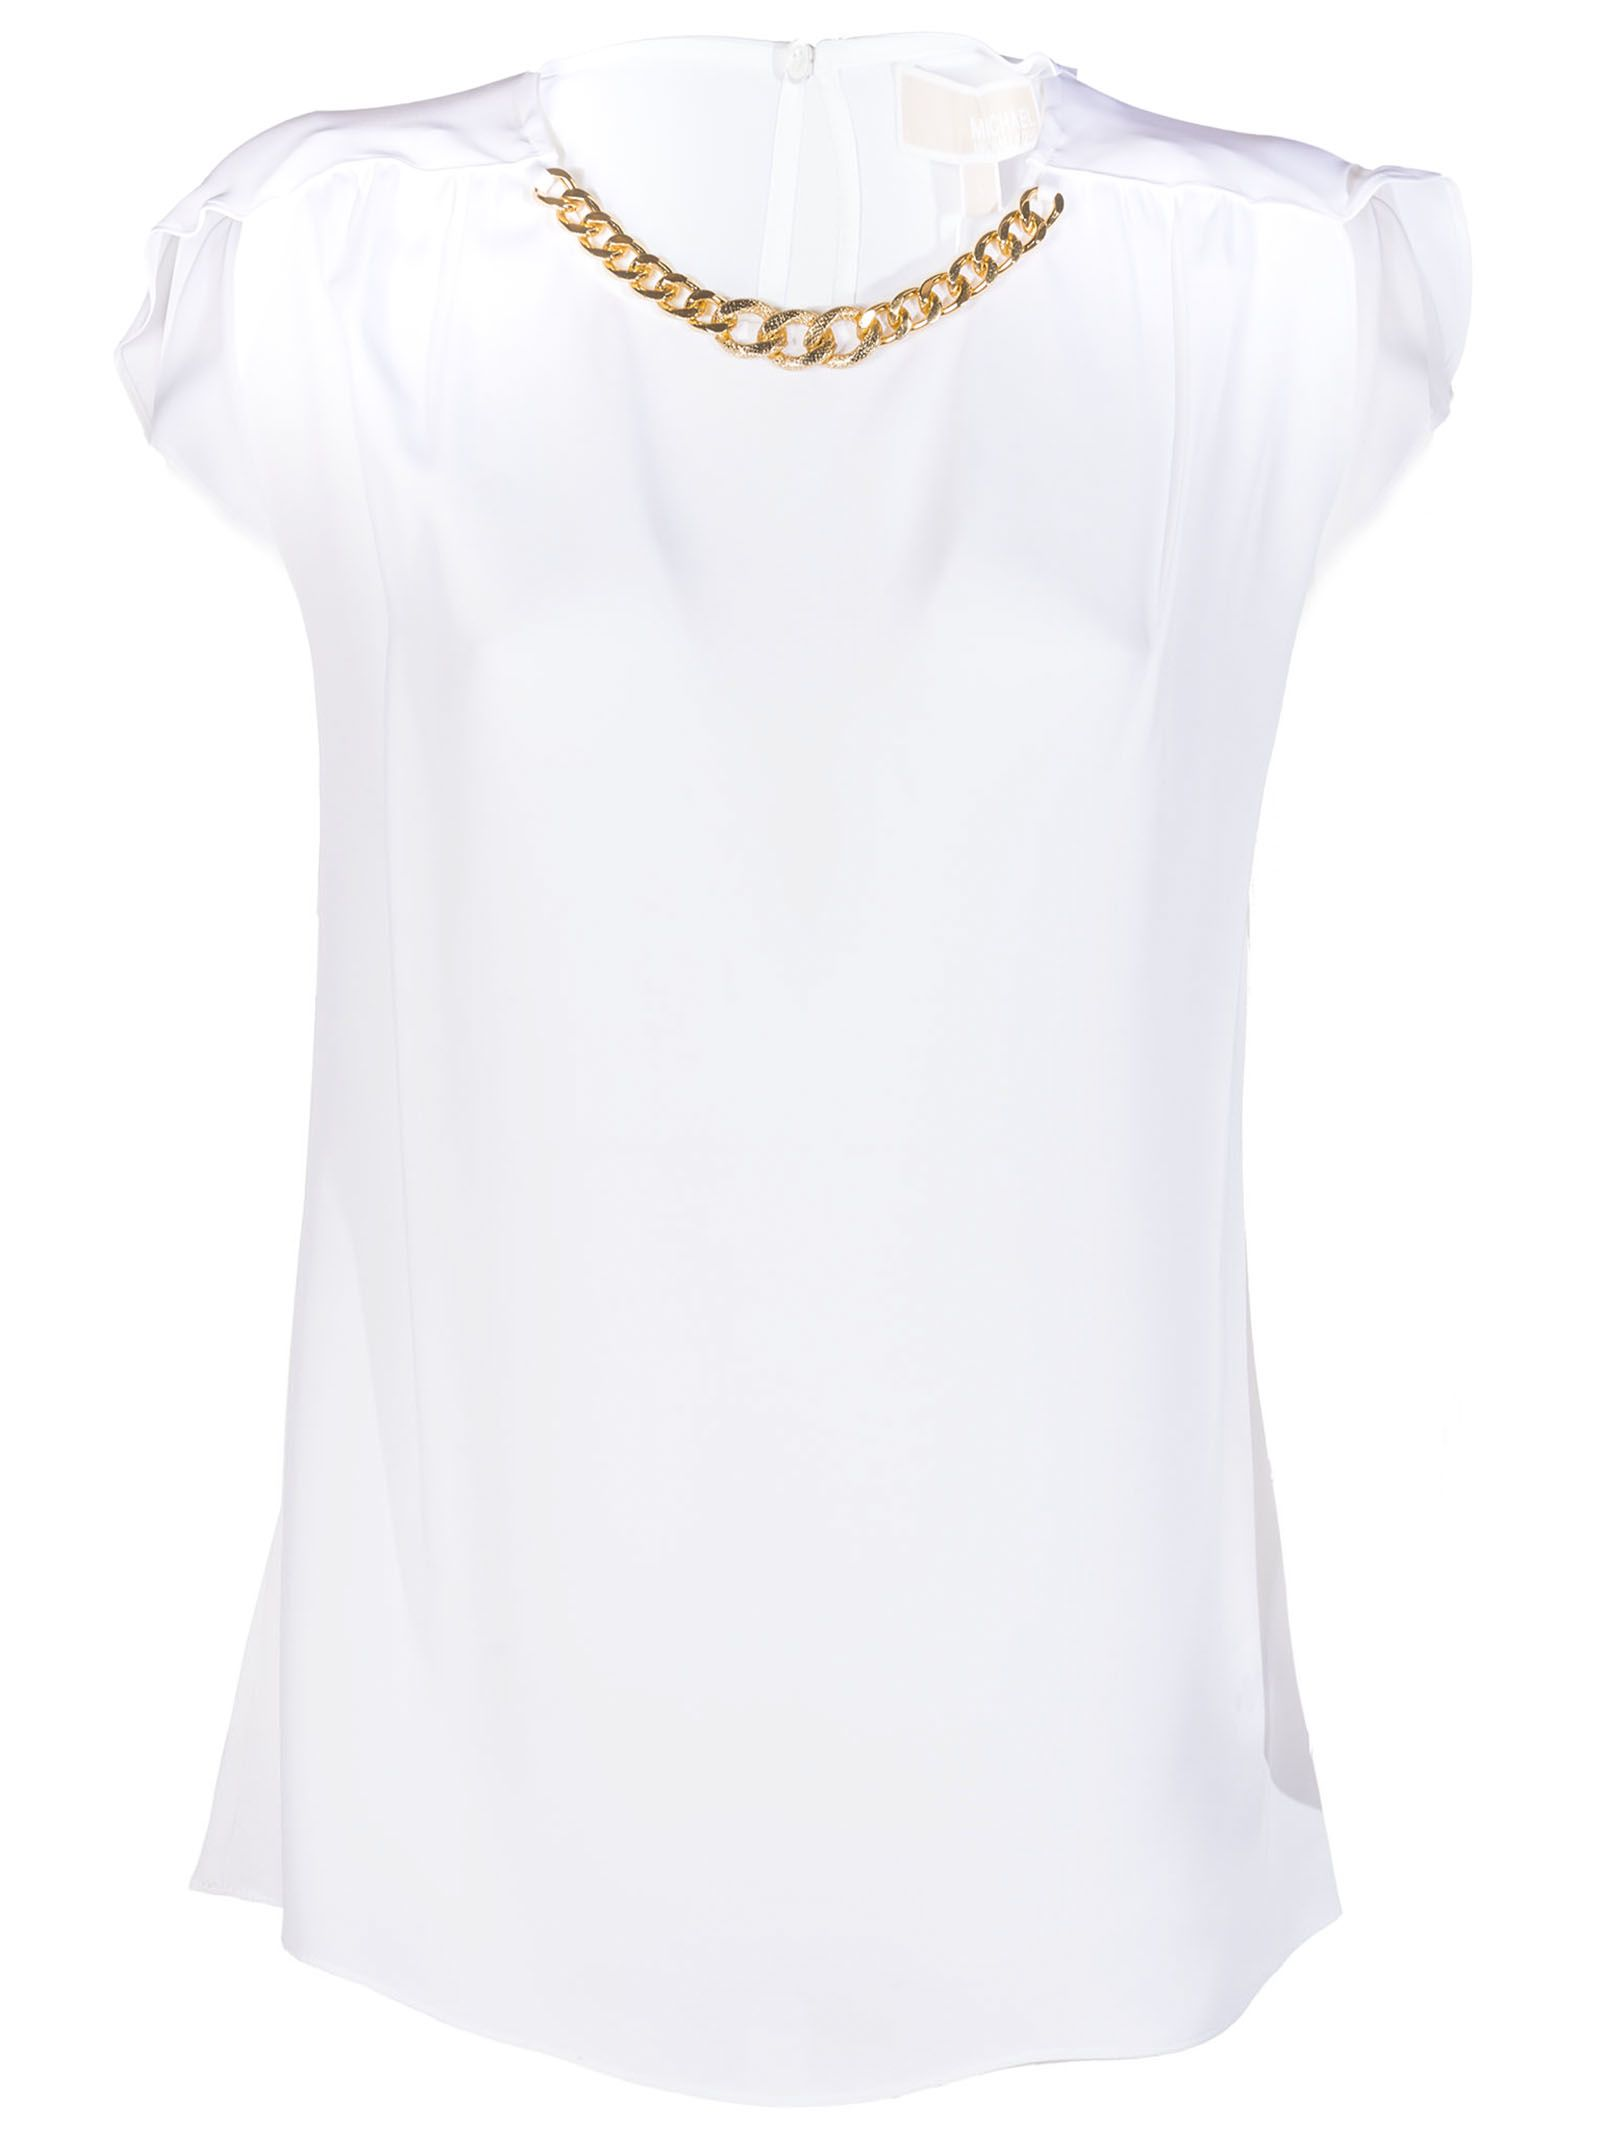 MICHAEL Michael Kors Chain Detail Blouse